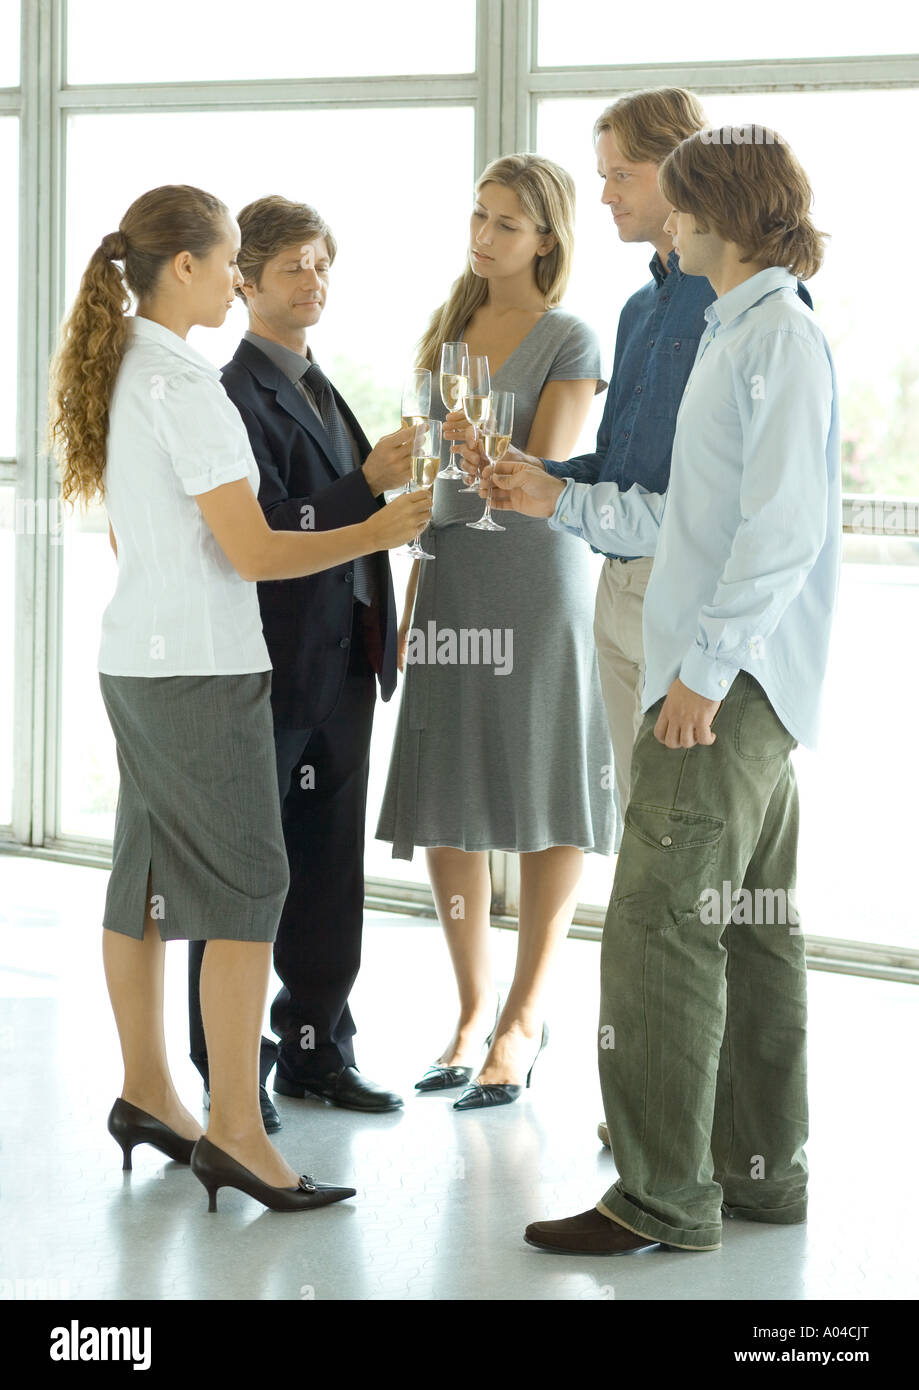 Group of executives making a toast during cocktail party - Stock Image